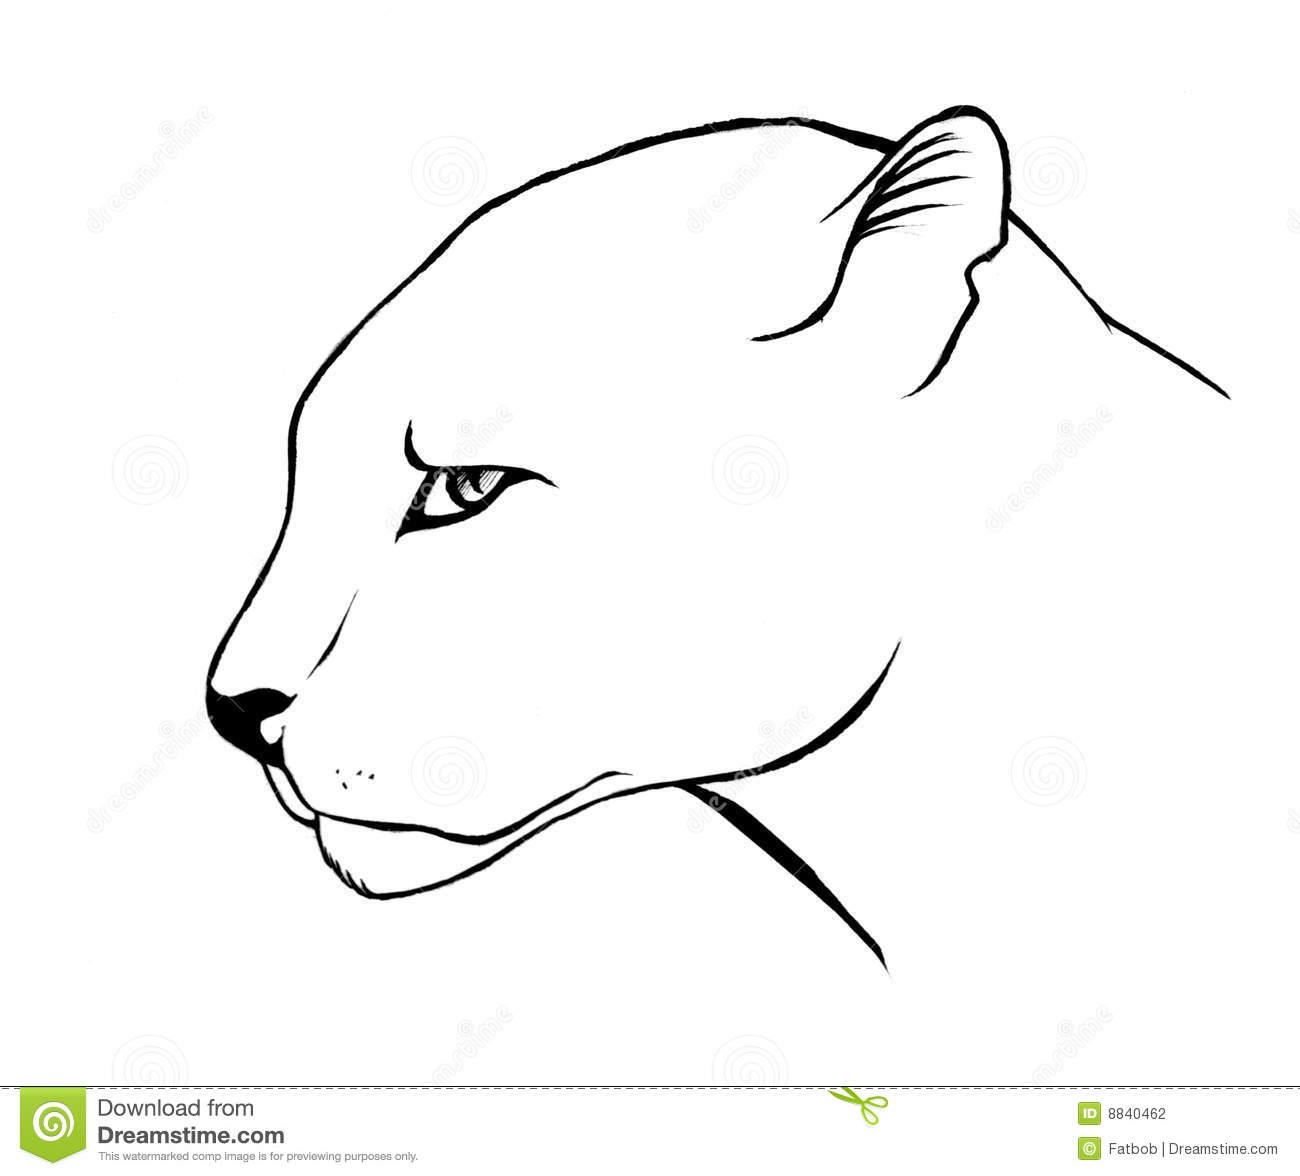 panther drawing outline - photo #33